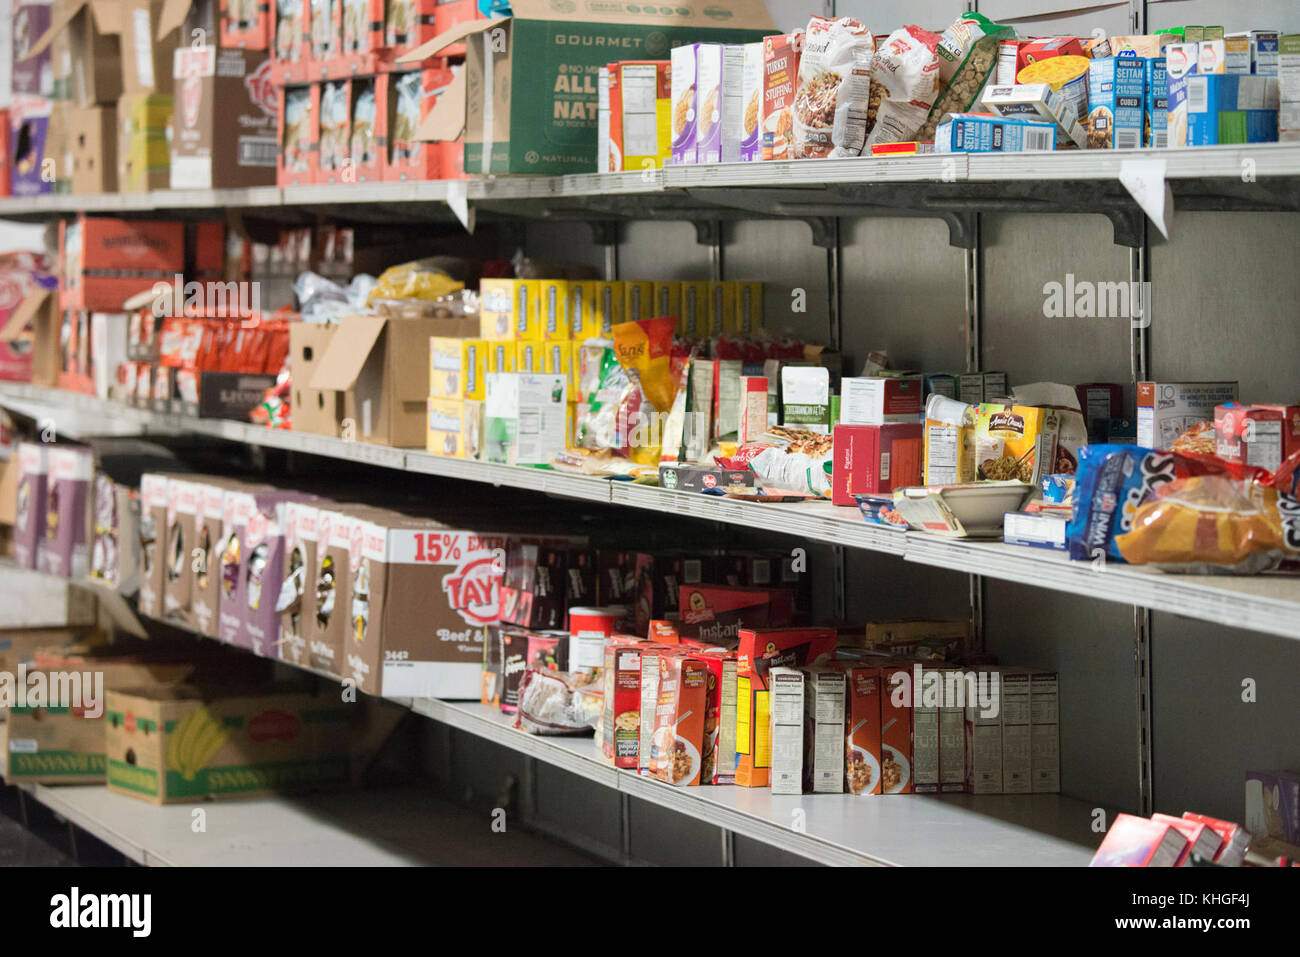 Community FoodBank of New Jersey operations include keeping